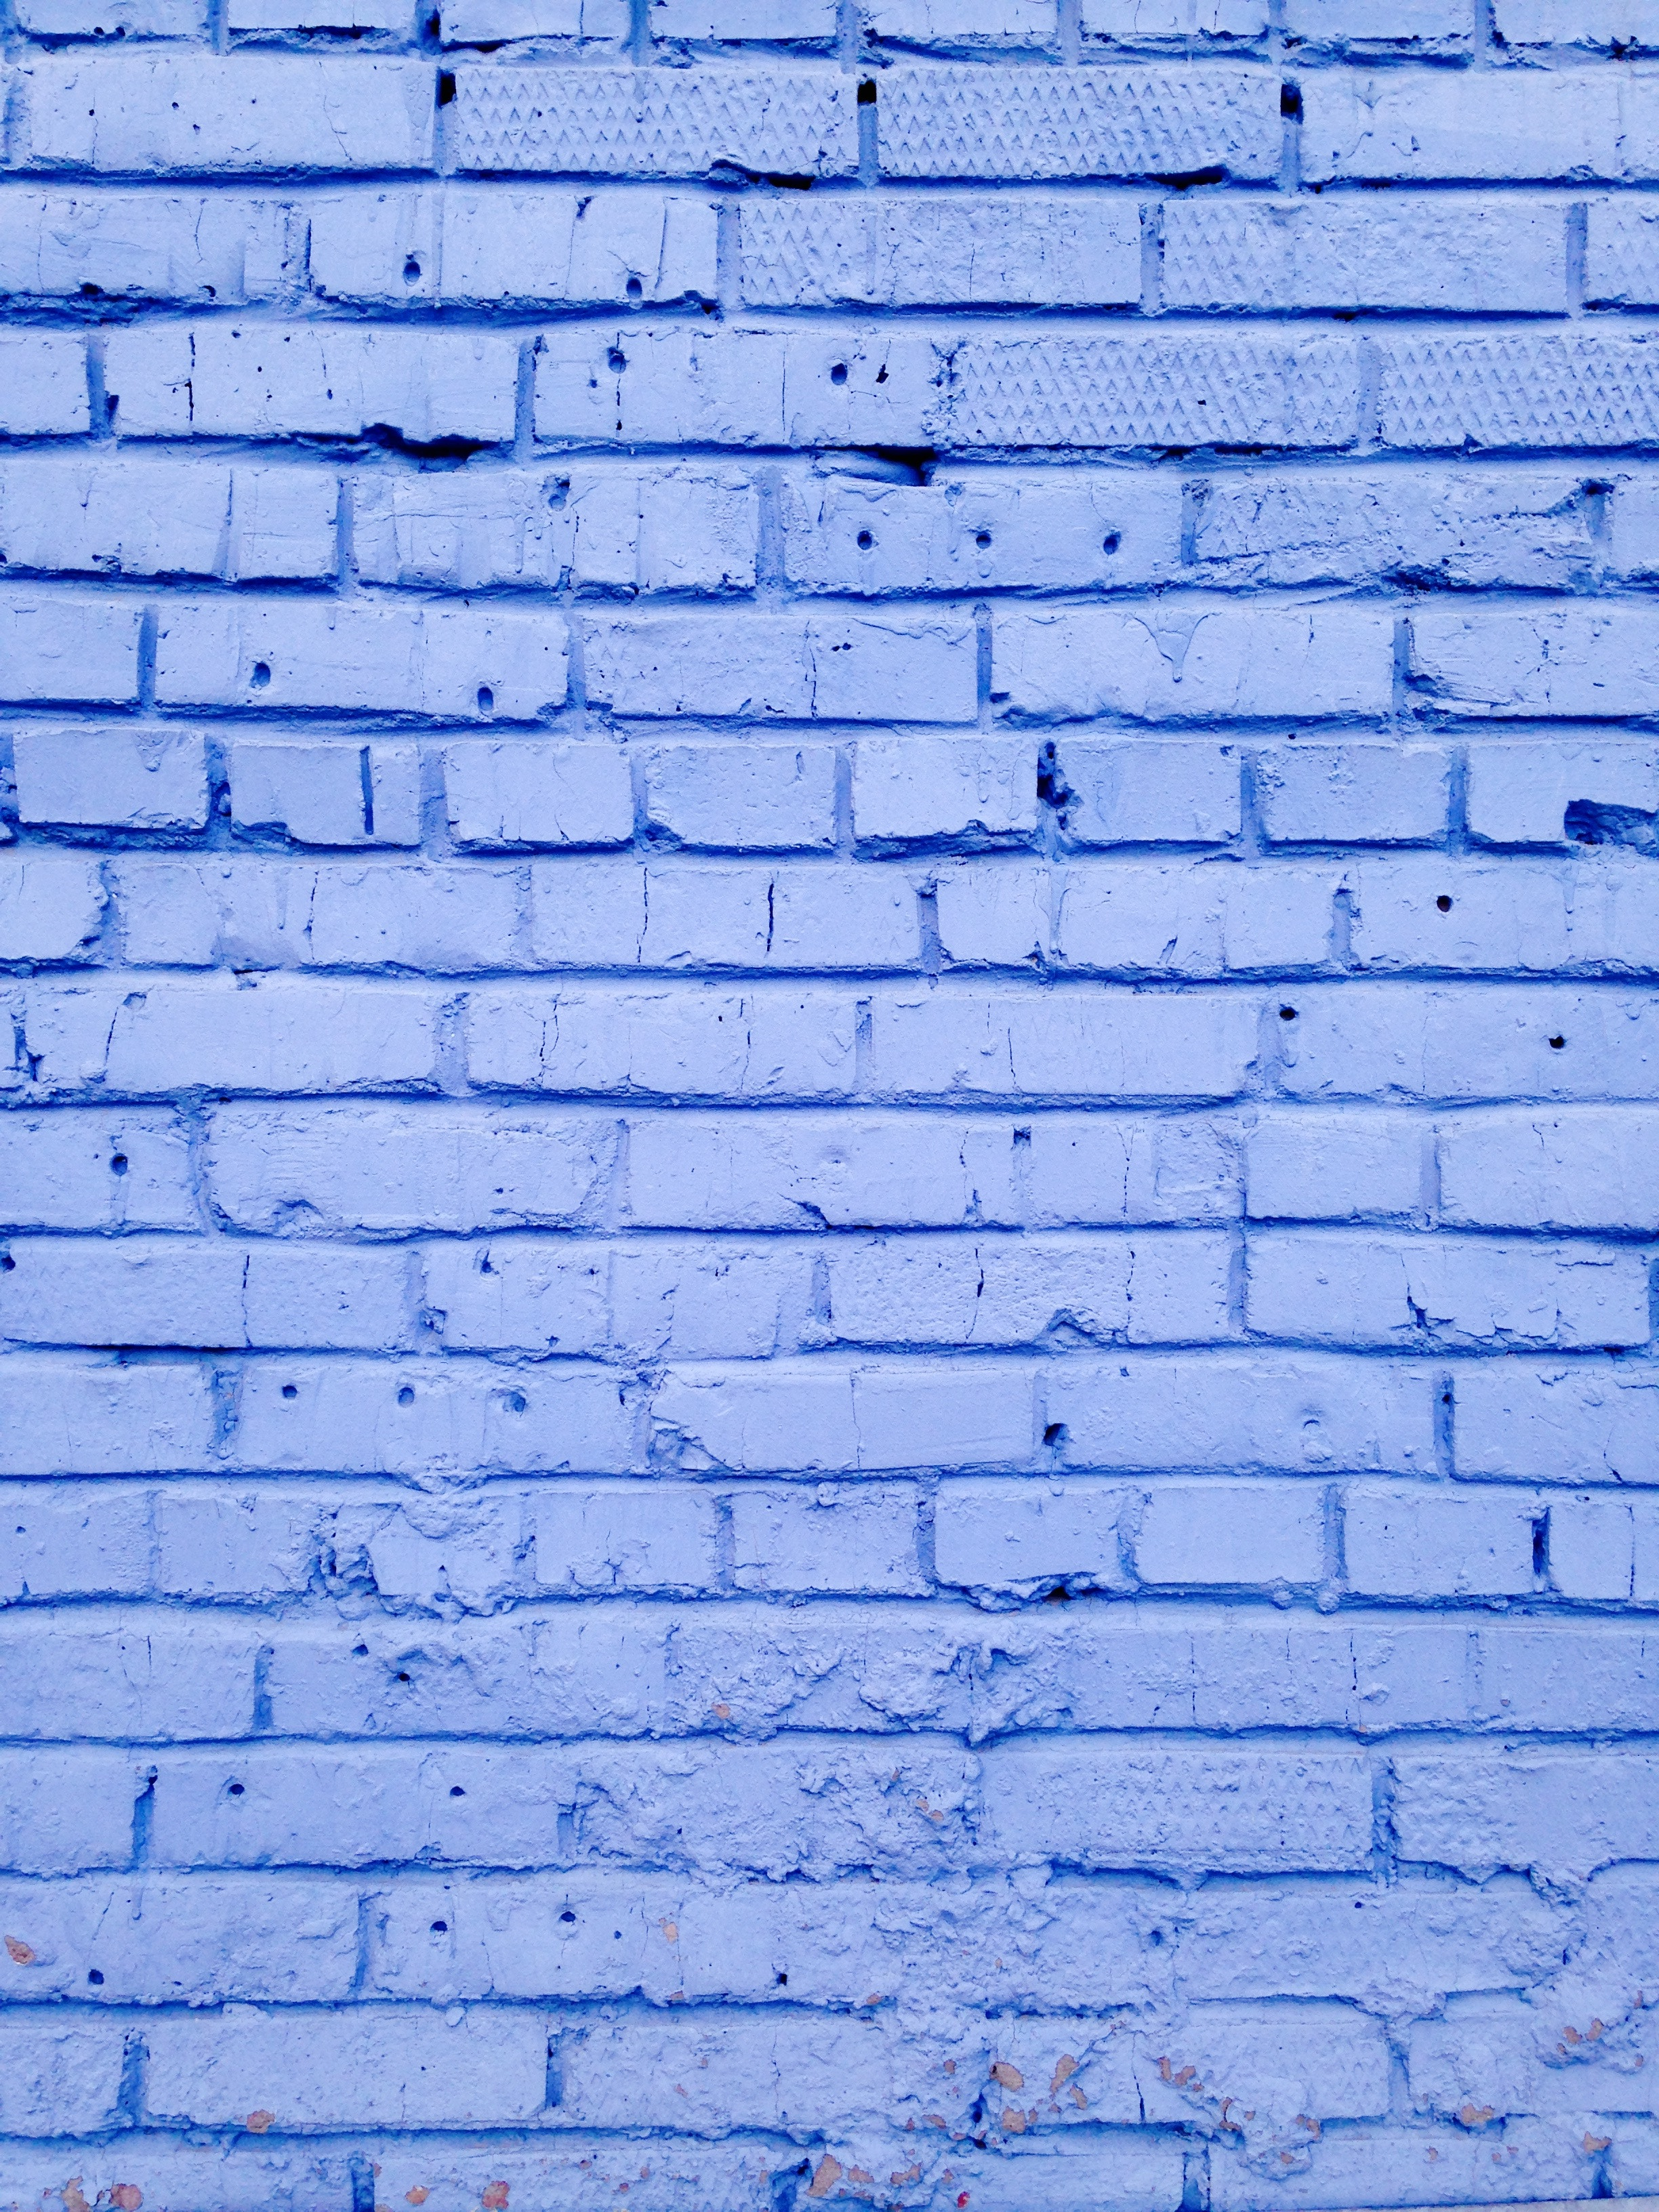 145646 download wallpaper Wall, Lilac, Texture, Textures, Bricks, Painted, Colored screensavers and pictures for free